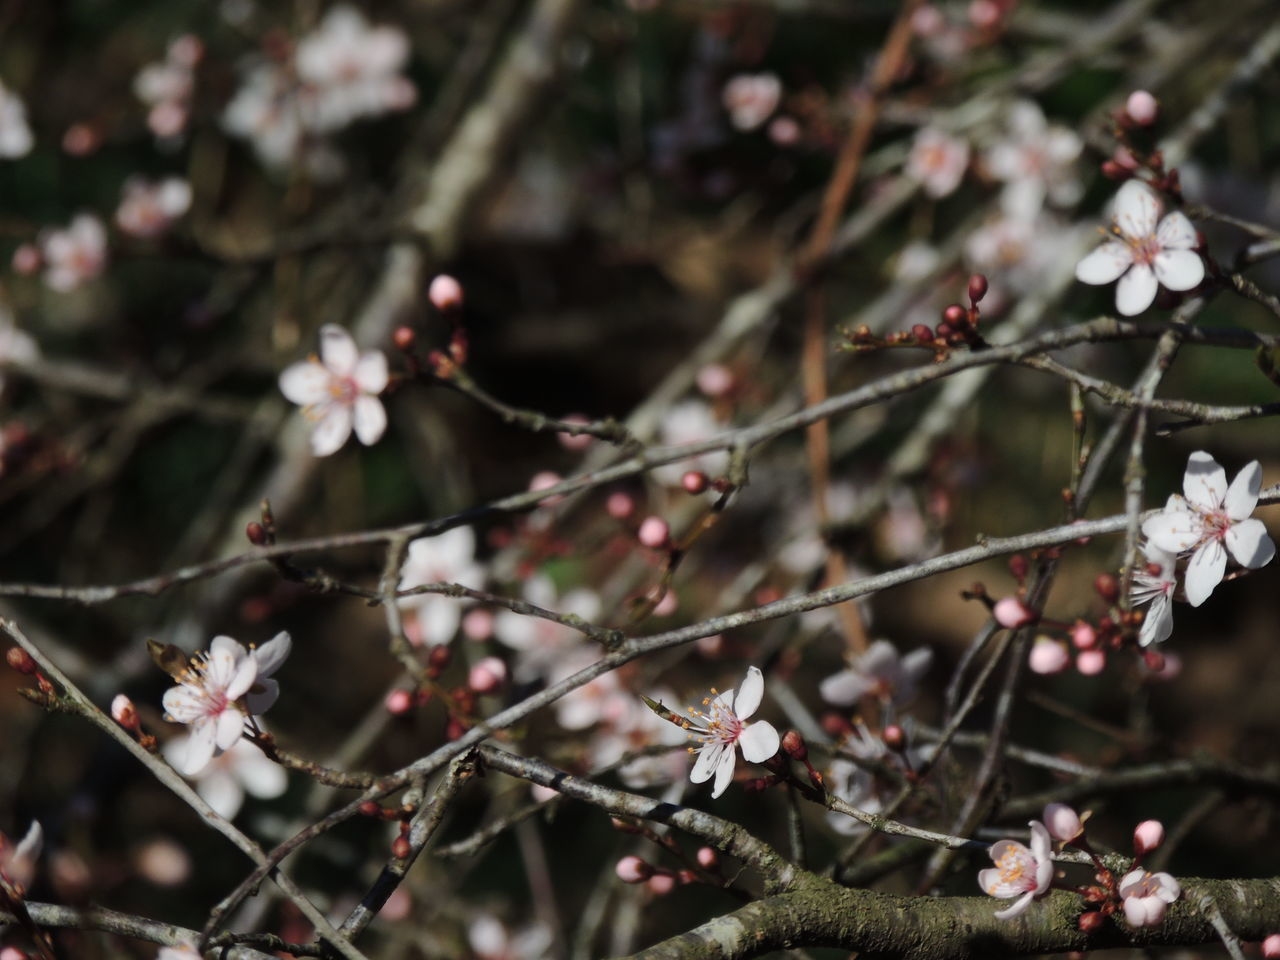 flower, nature, growth, branch, tree, beauty in nature, twig, no people, blossom, fragility, day, outdoors, springtime, freshness, close-up